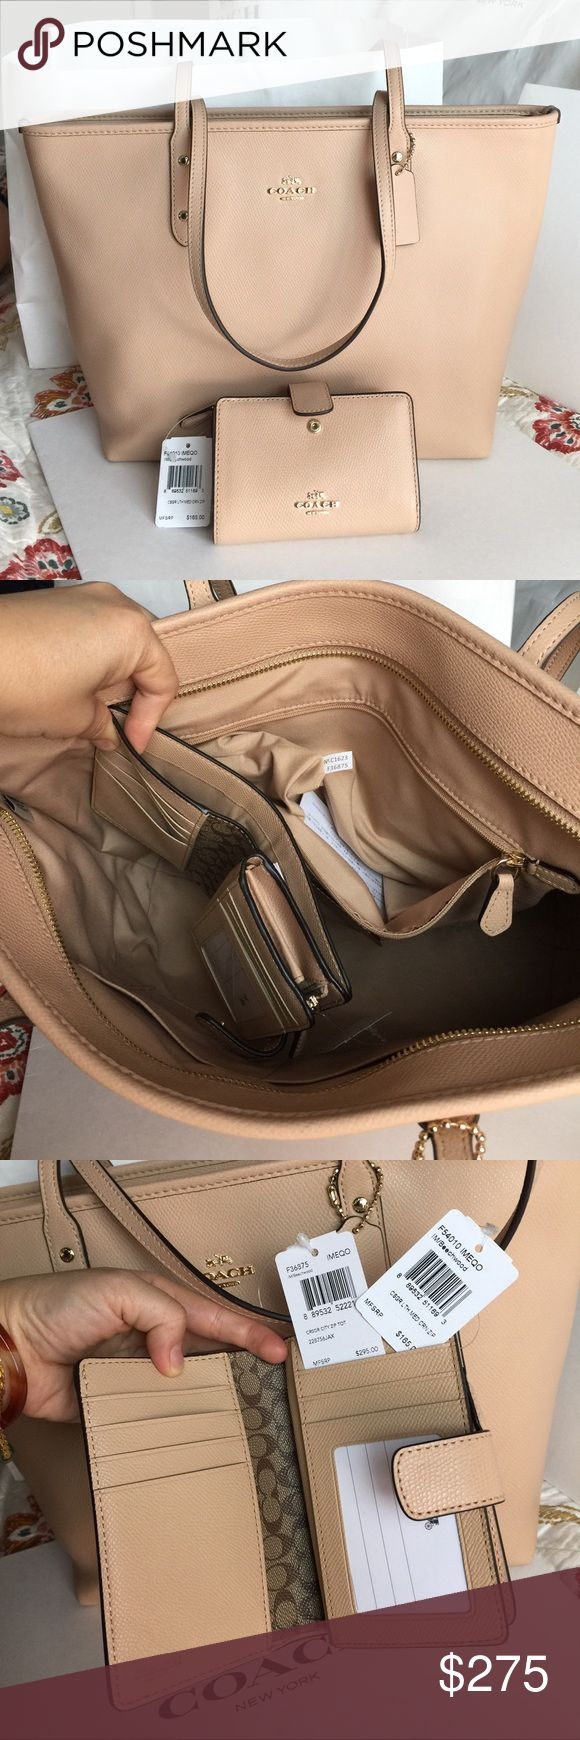 Coach Tote Bag & Wallet 100% Authentic Coach Tote Bag and Wallet, both brand new with tag! Coach Bags Totes